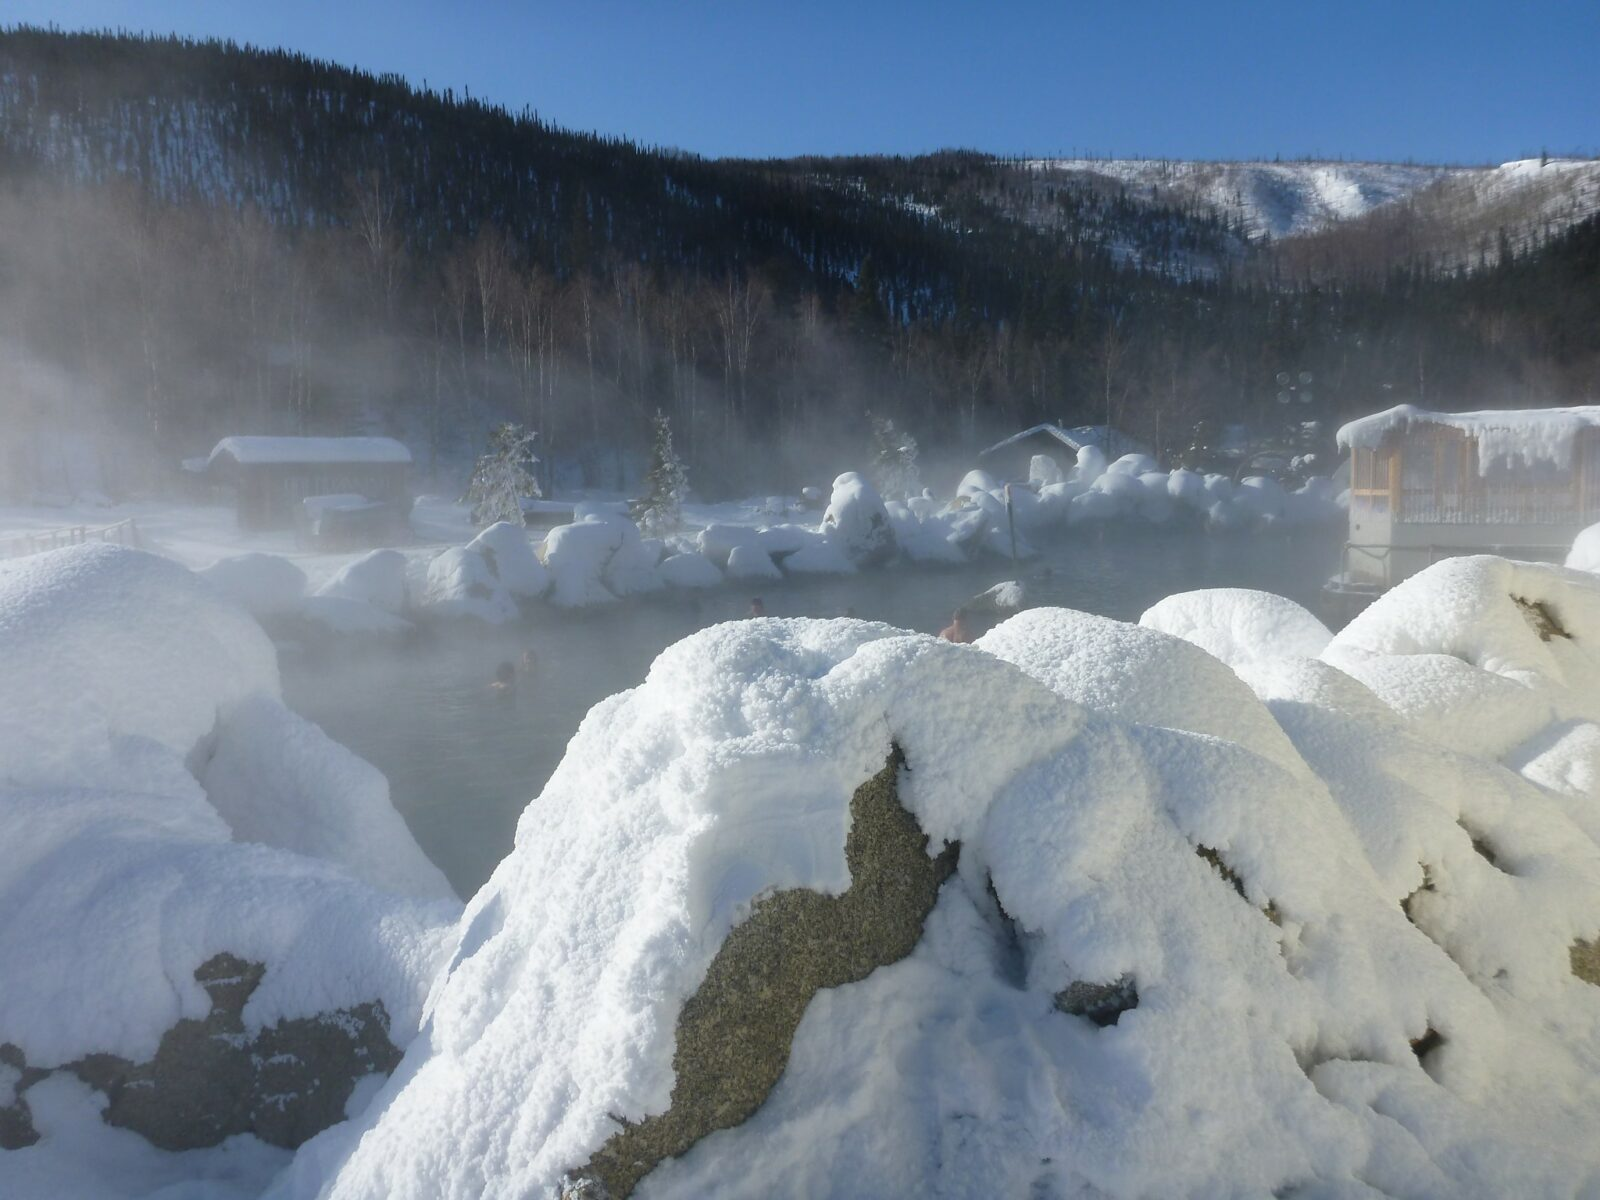 wintry hot springs surrounded by icy and snowy rocks at Chena Hot springs